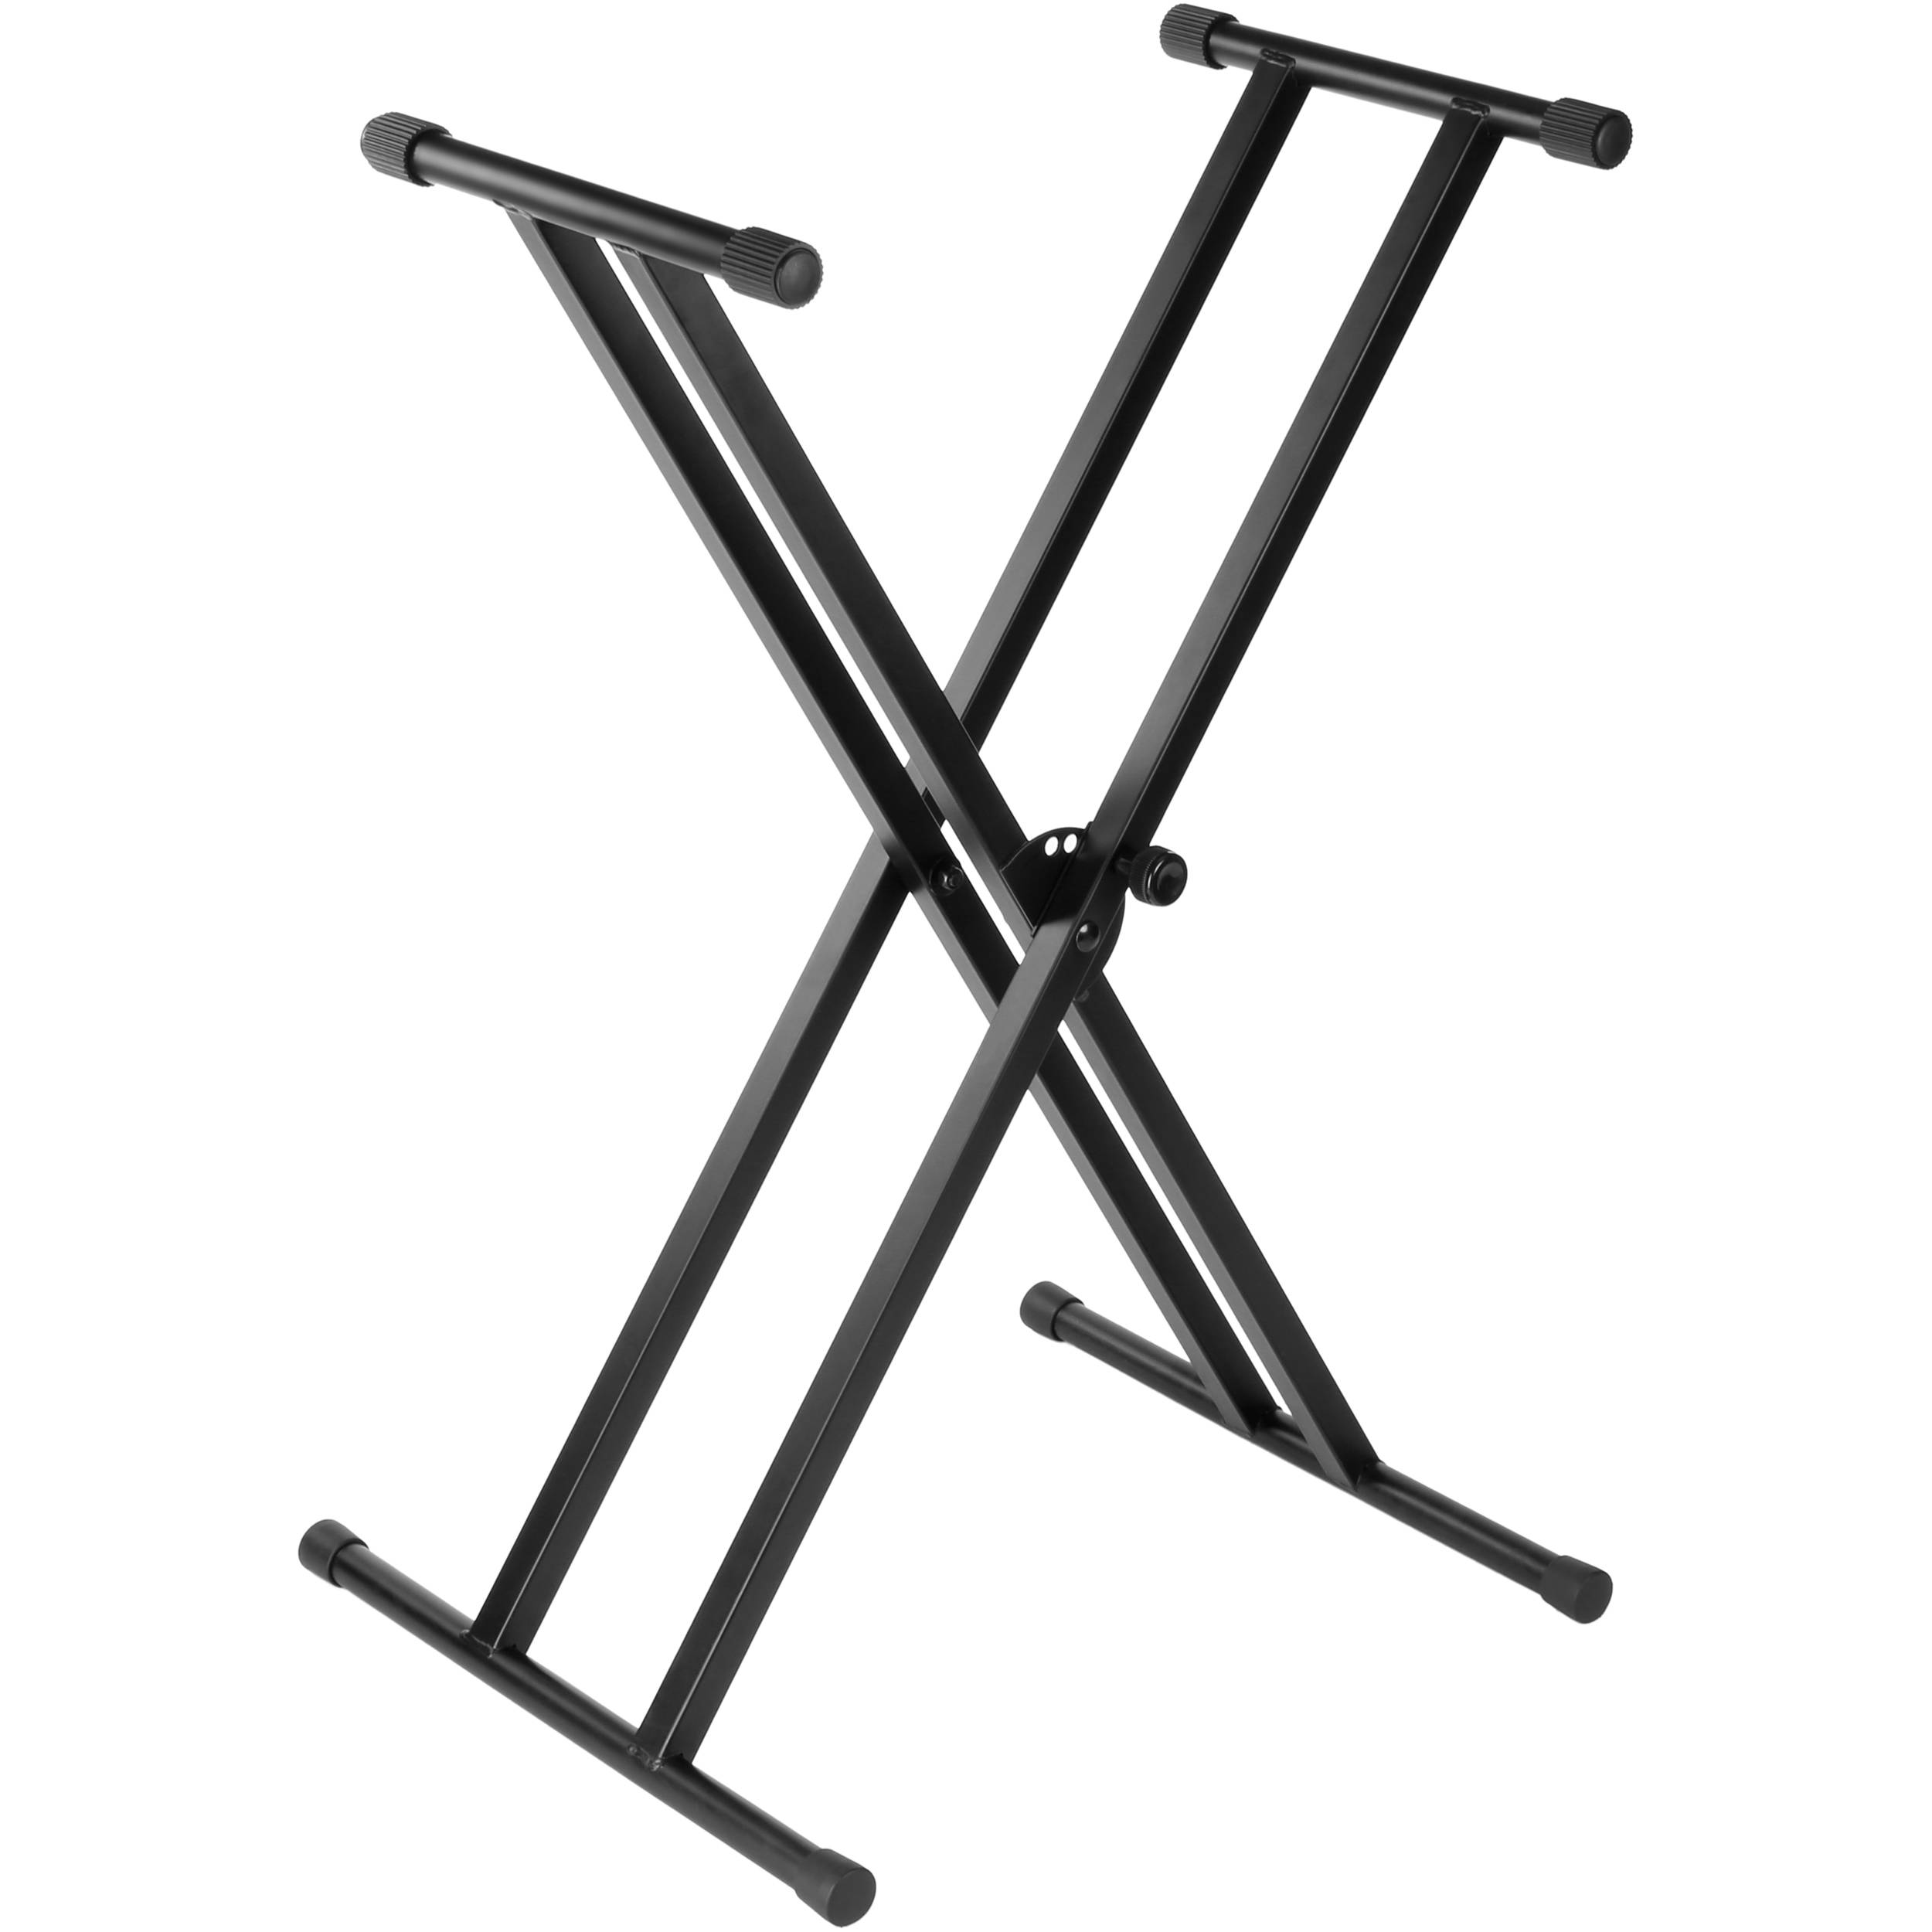 Keyboard Stand Designs : Keyboard stand clipart best